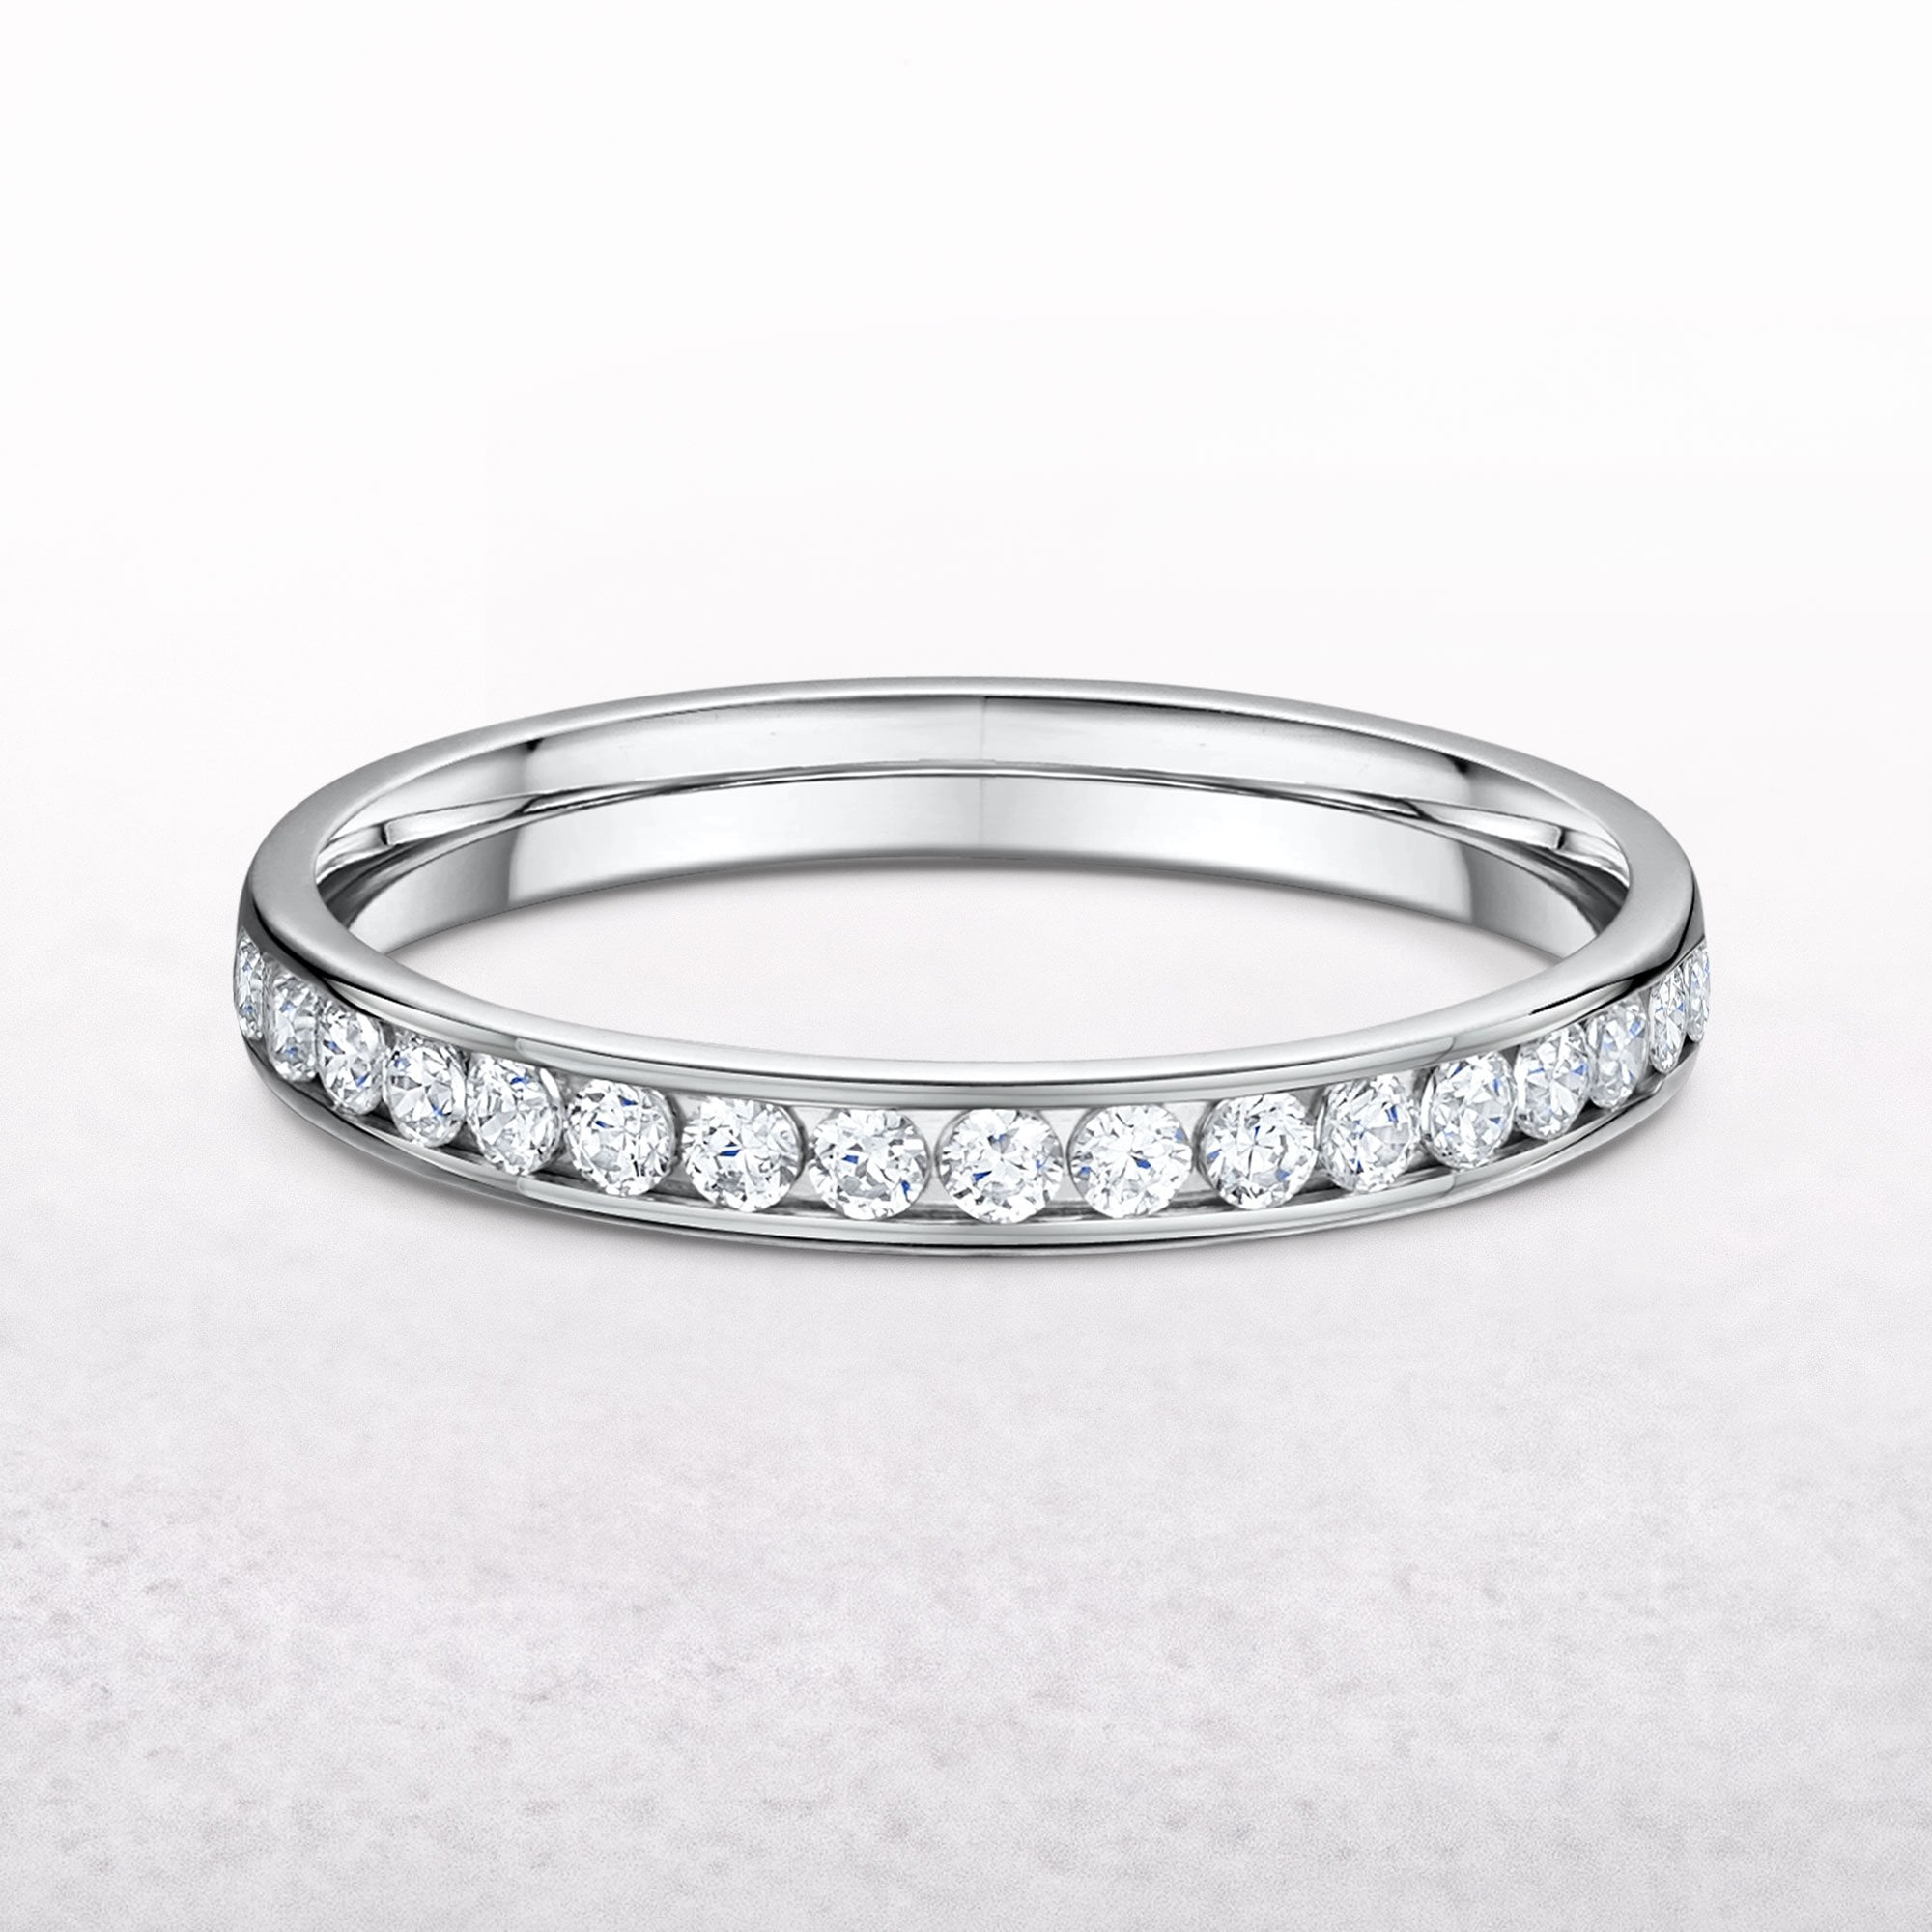 This is a picture of Diamond 43.43ct 43.43mm Channel Set Platinum Wedding Ring